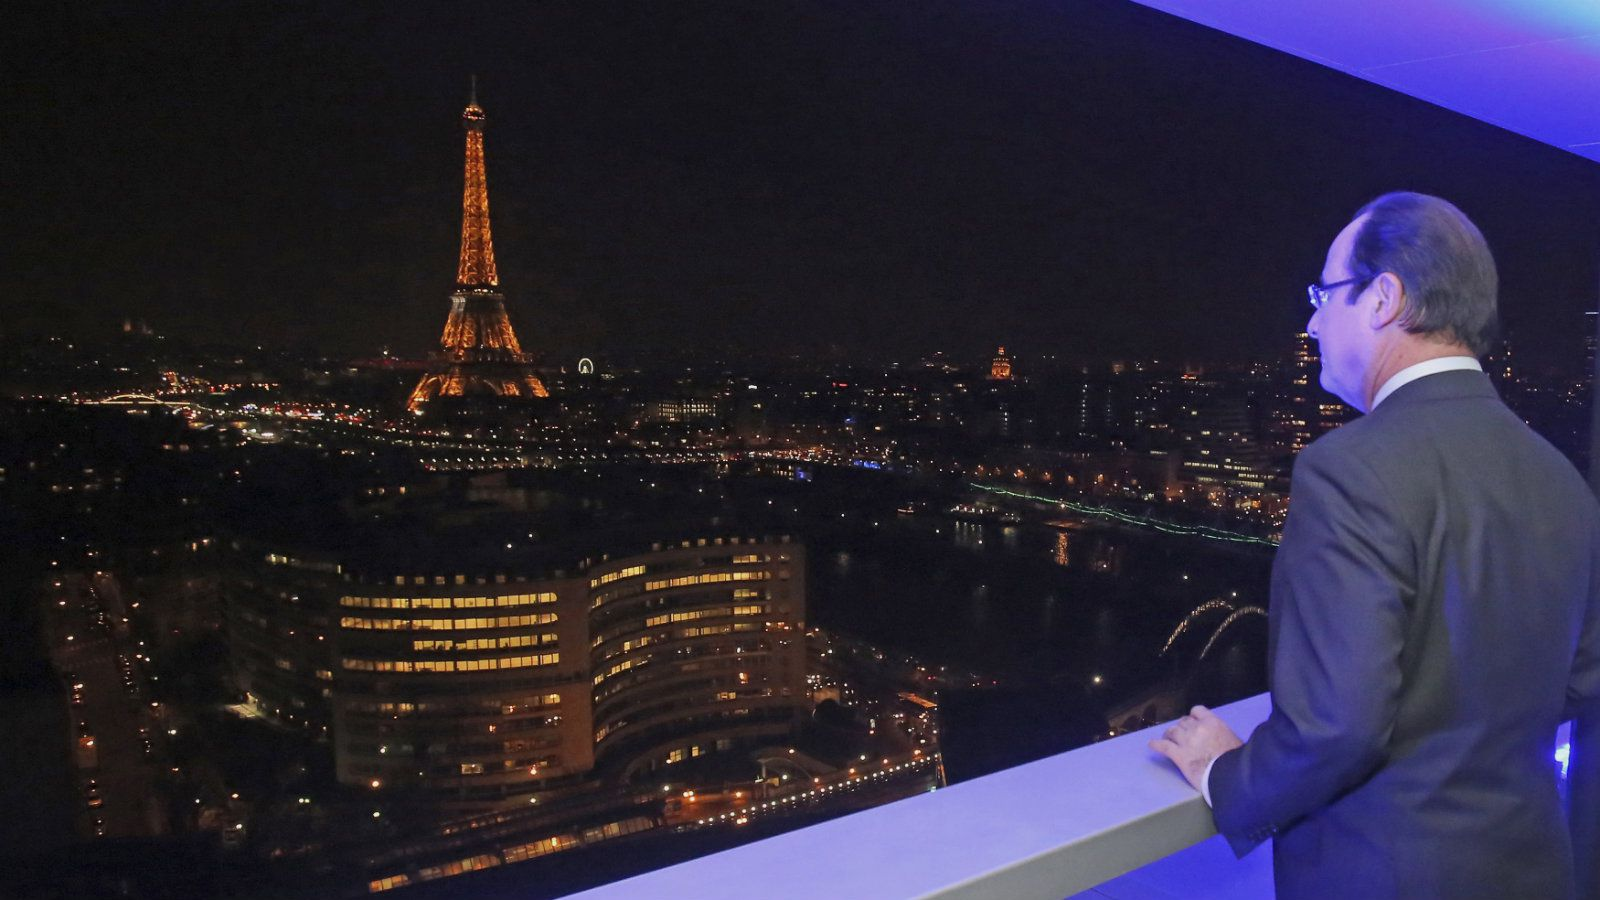 French President Francois Hollande looks at the Paris skyline, including the Eiffel Tower, at night as he visits the Radio France headquarters at the occasion of the 5Oth anniversary of the creation of Radio France, in Paris, December 17, 2013. REUTERS/Remy de la Mauviniere/Pool (FRANCE - Tags: POLITICS MEDIA)